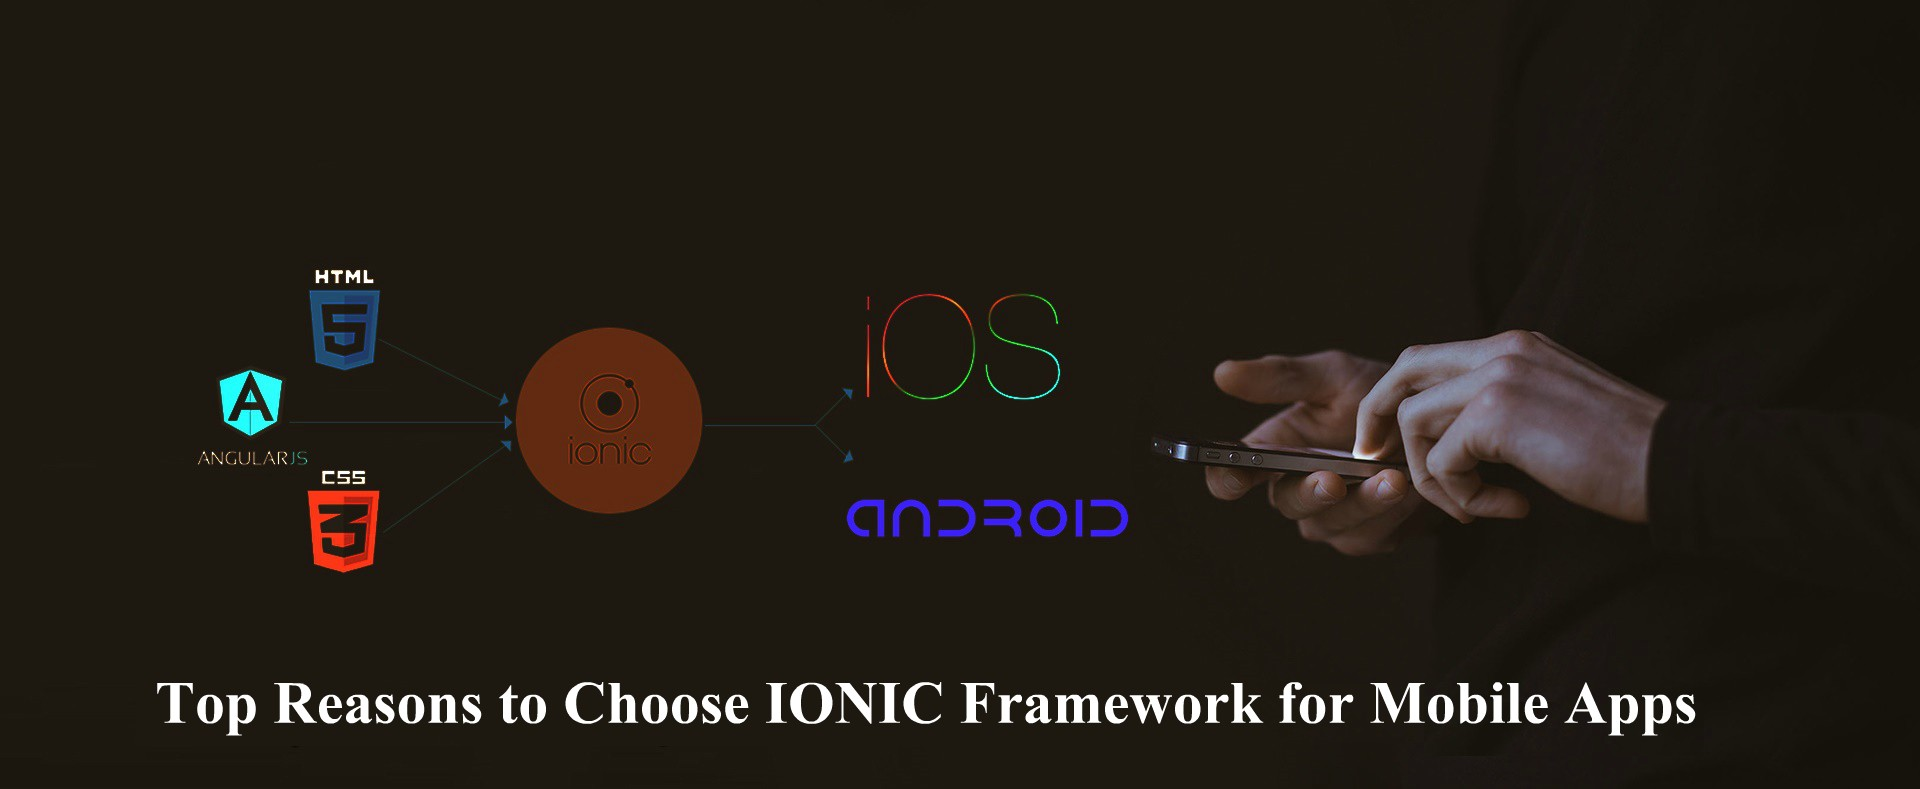 Top Reasons to Choose IONIC Framework for Mobile Apps